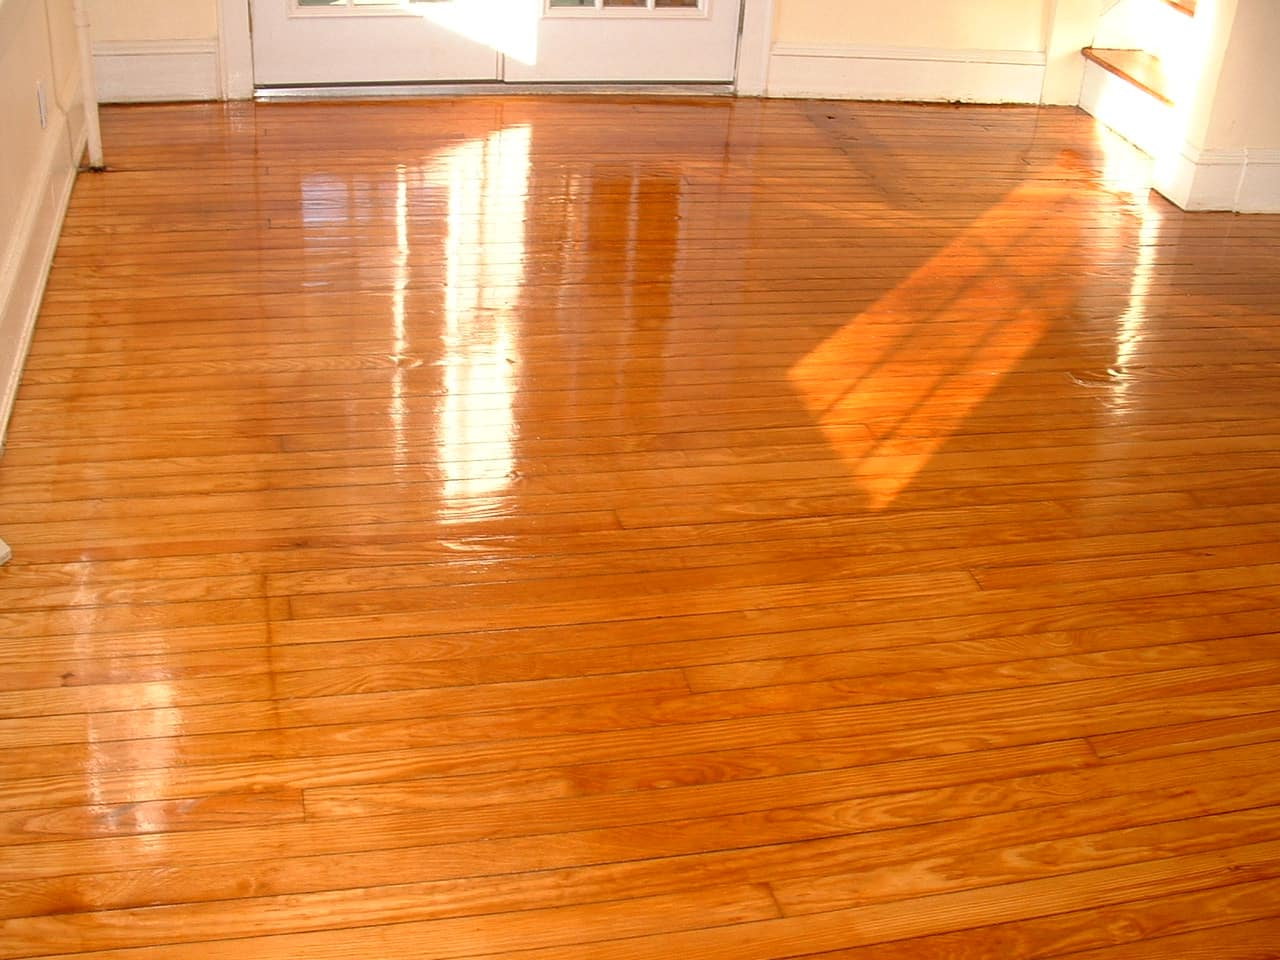 Refinish Hardwood Floors Cost Refinish Hardwood Floors Nj